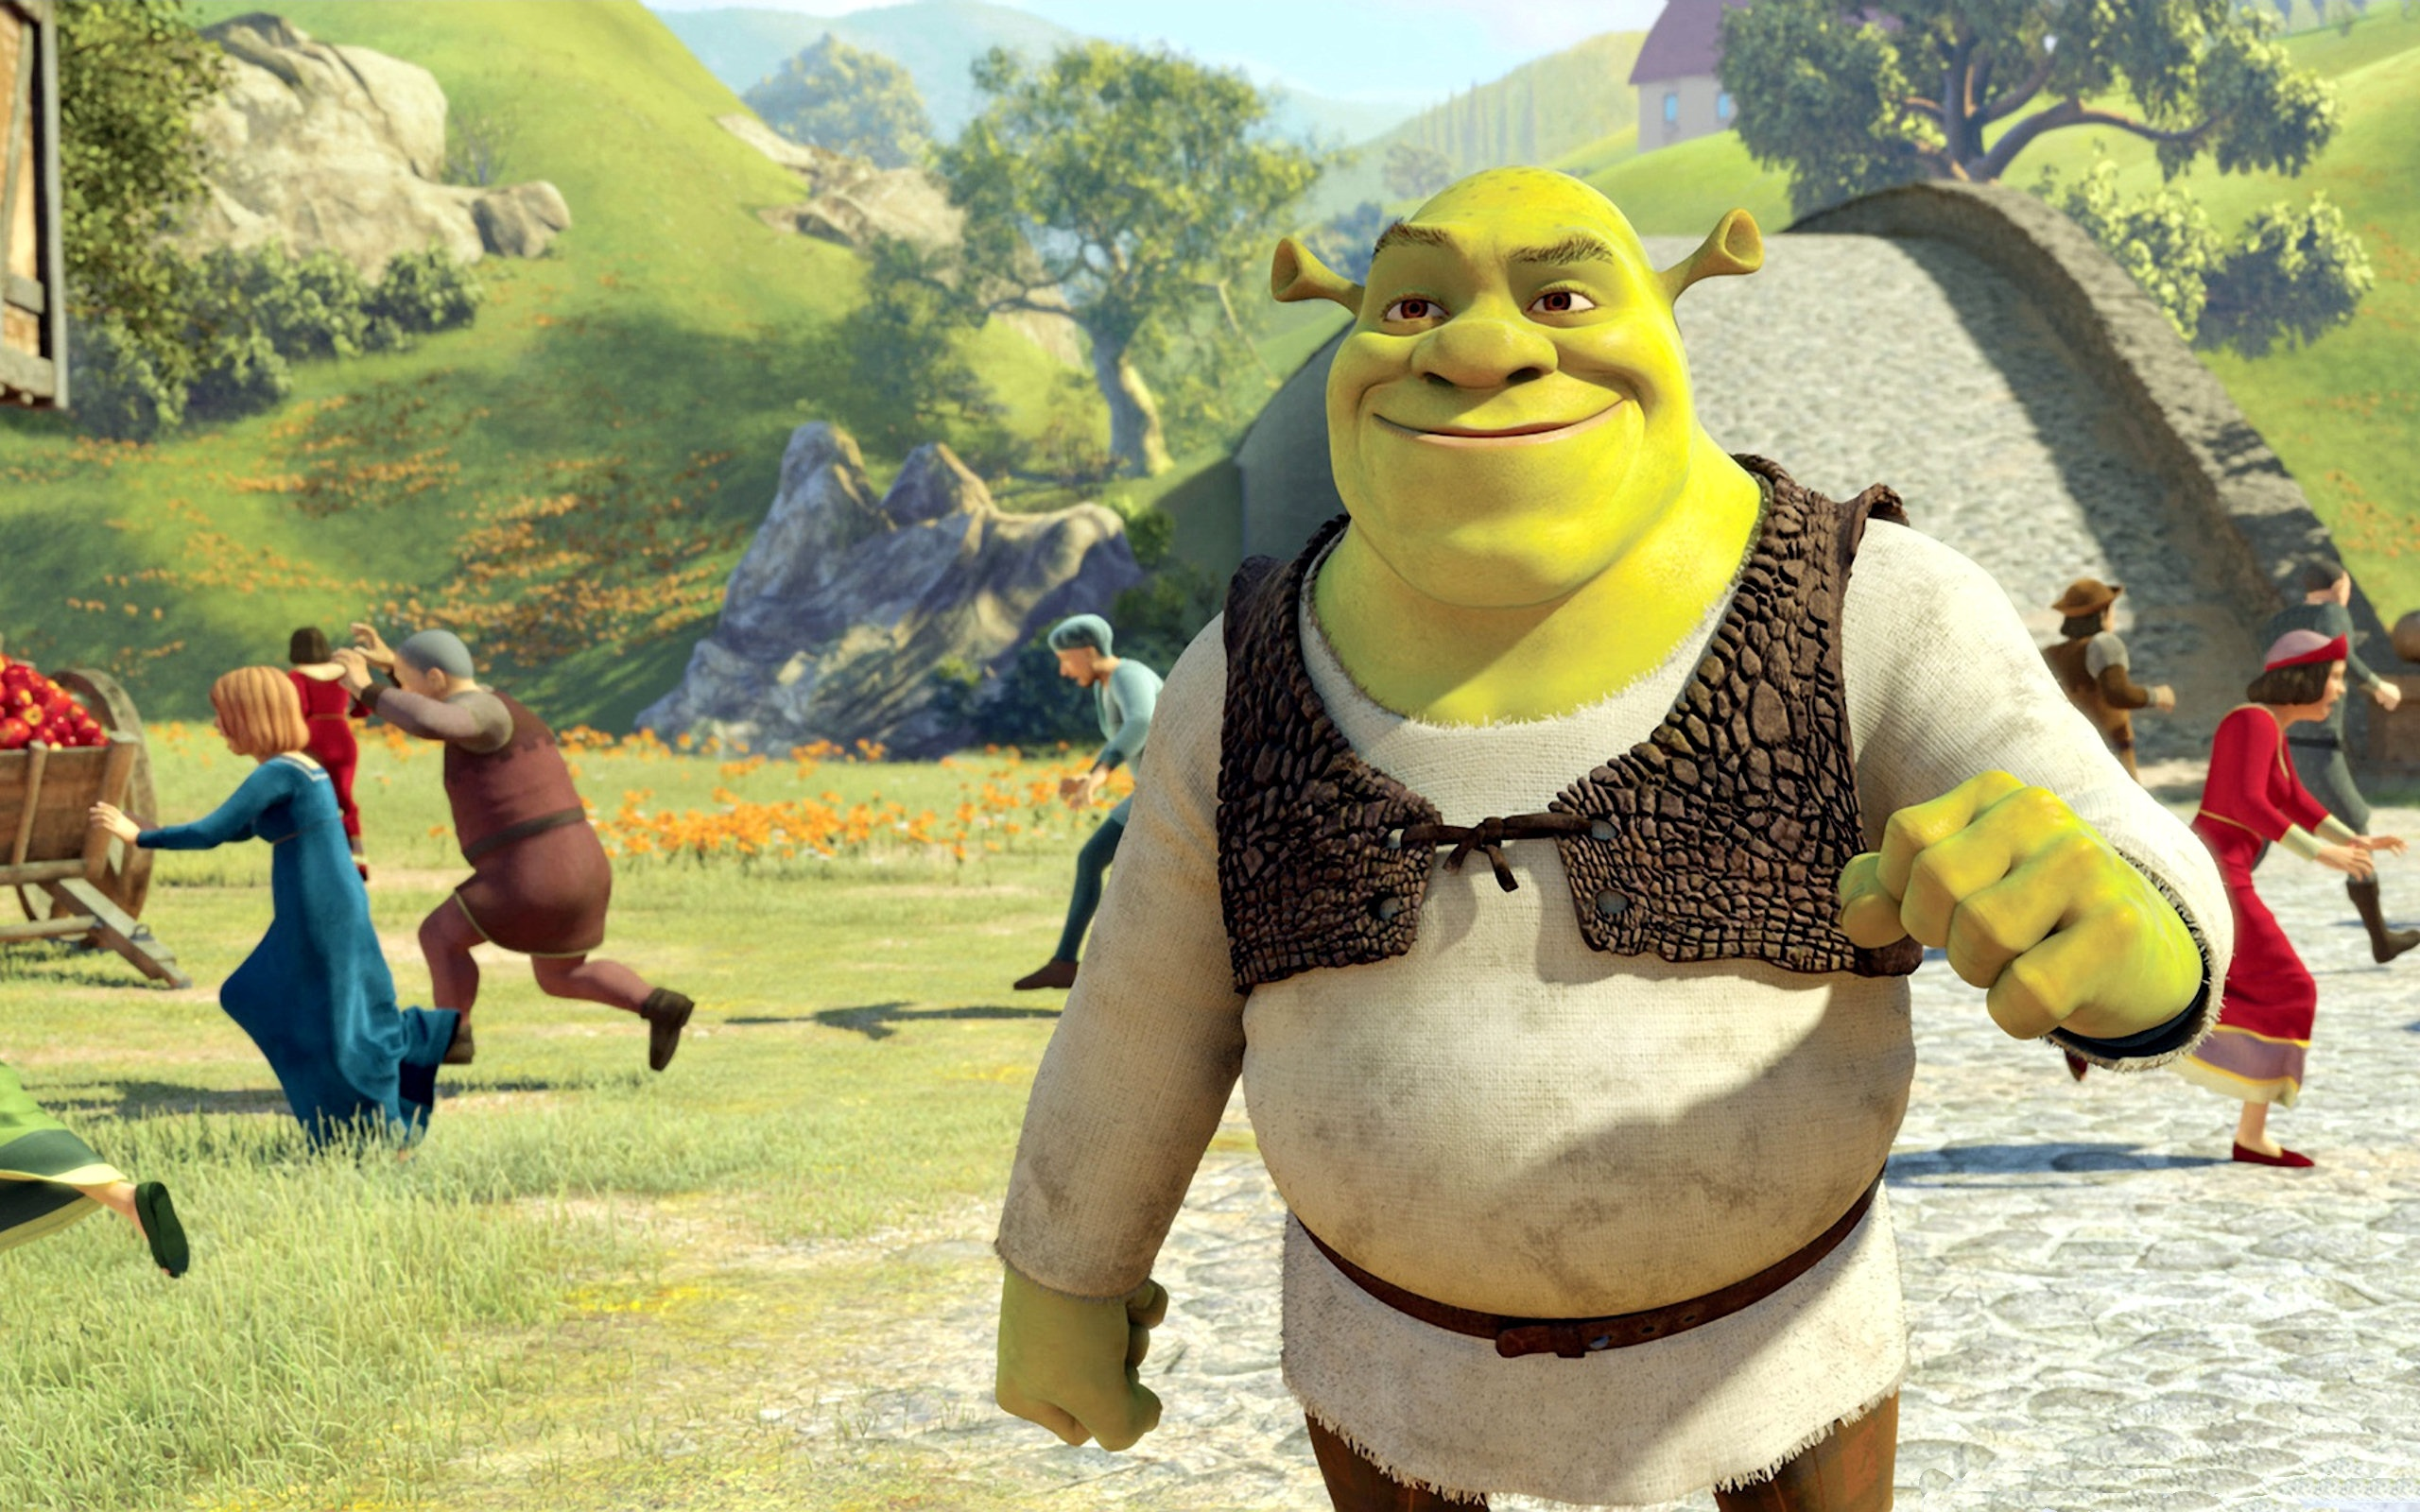 Shrek Wallpaper 4682 1920 x 1200 - WallpaperLayer com